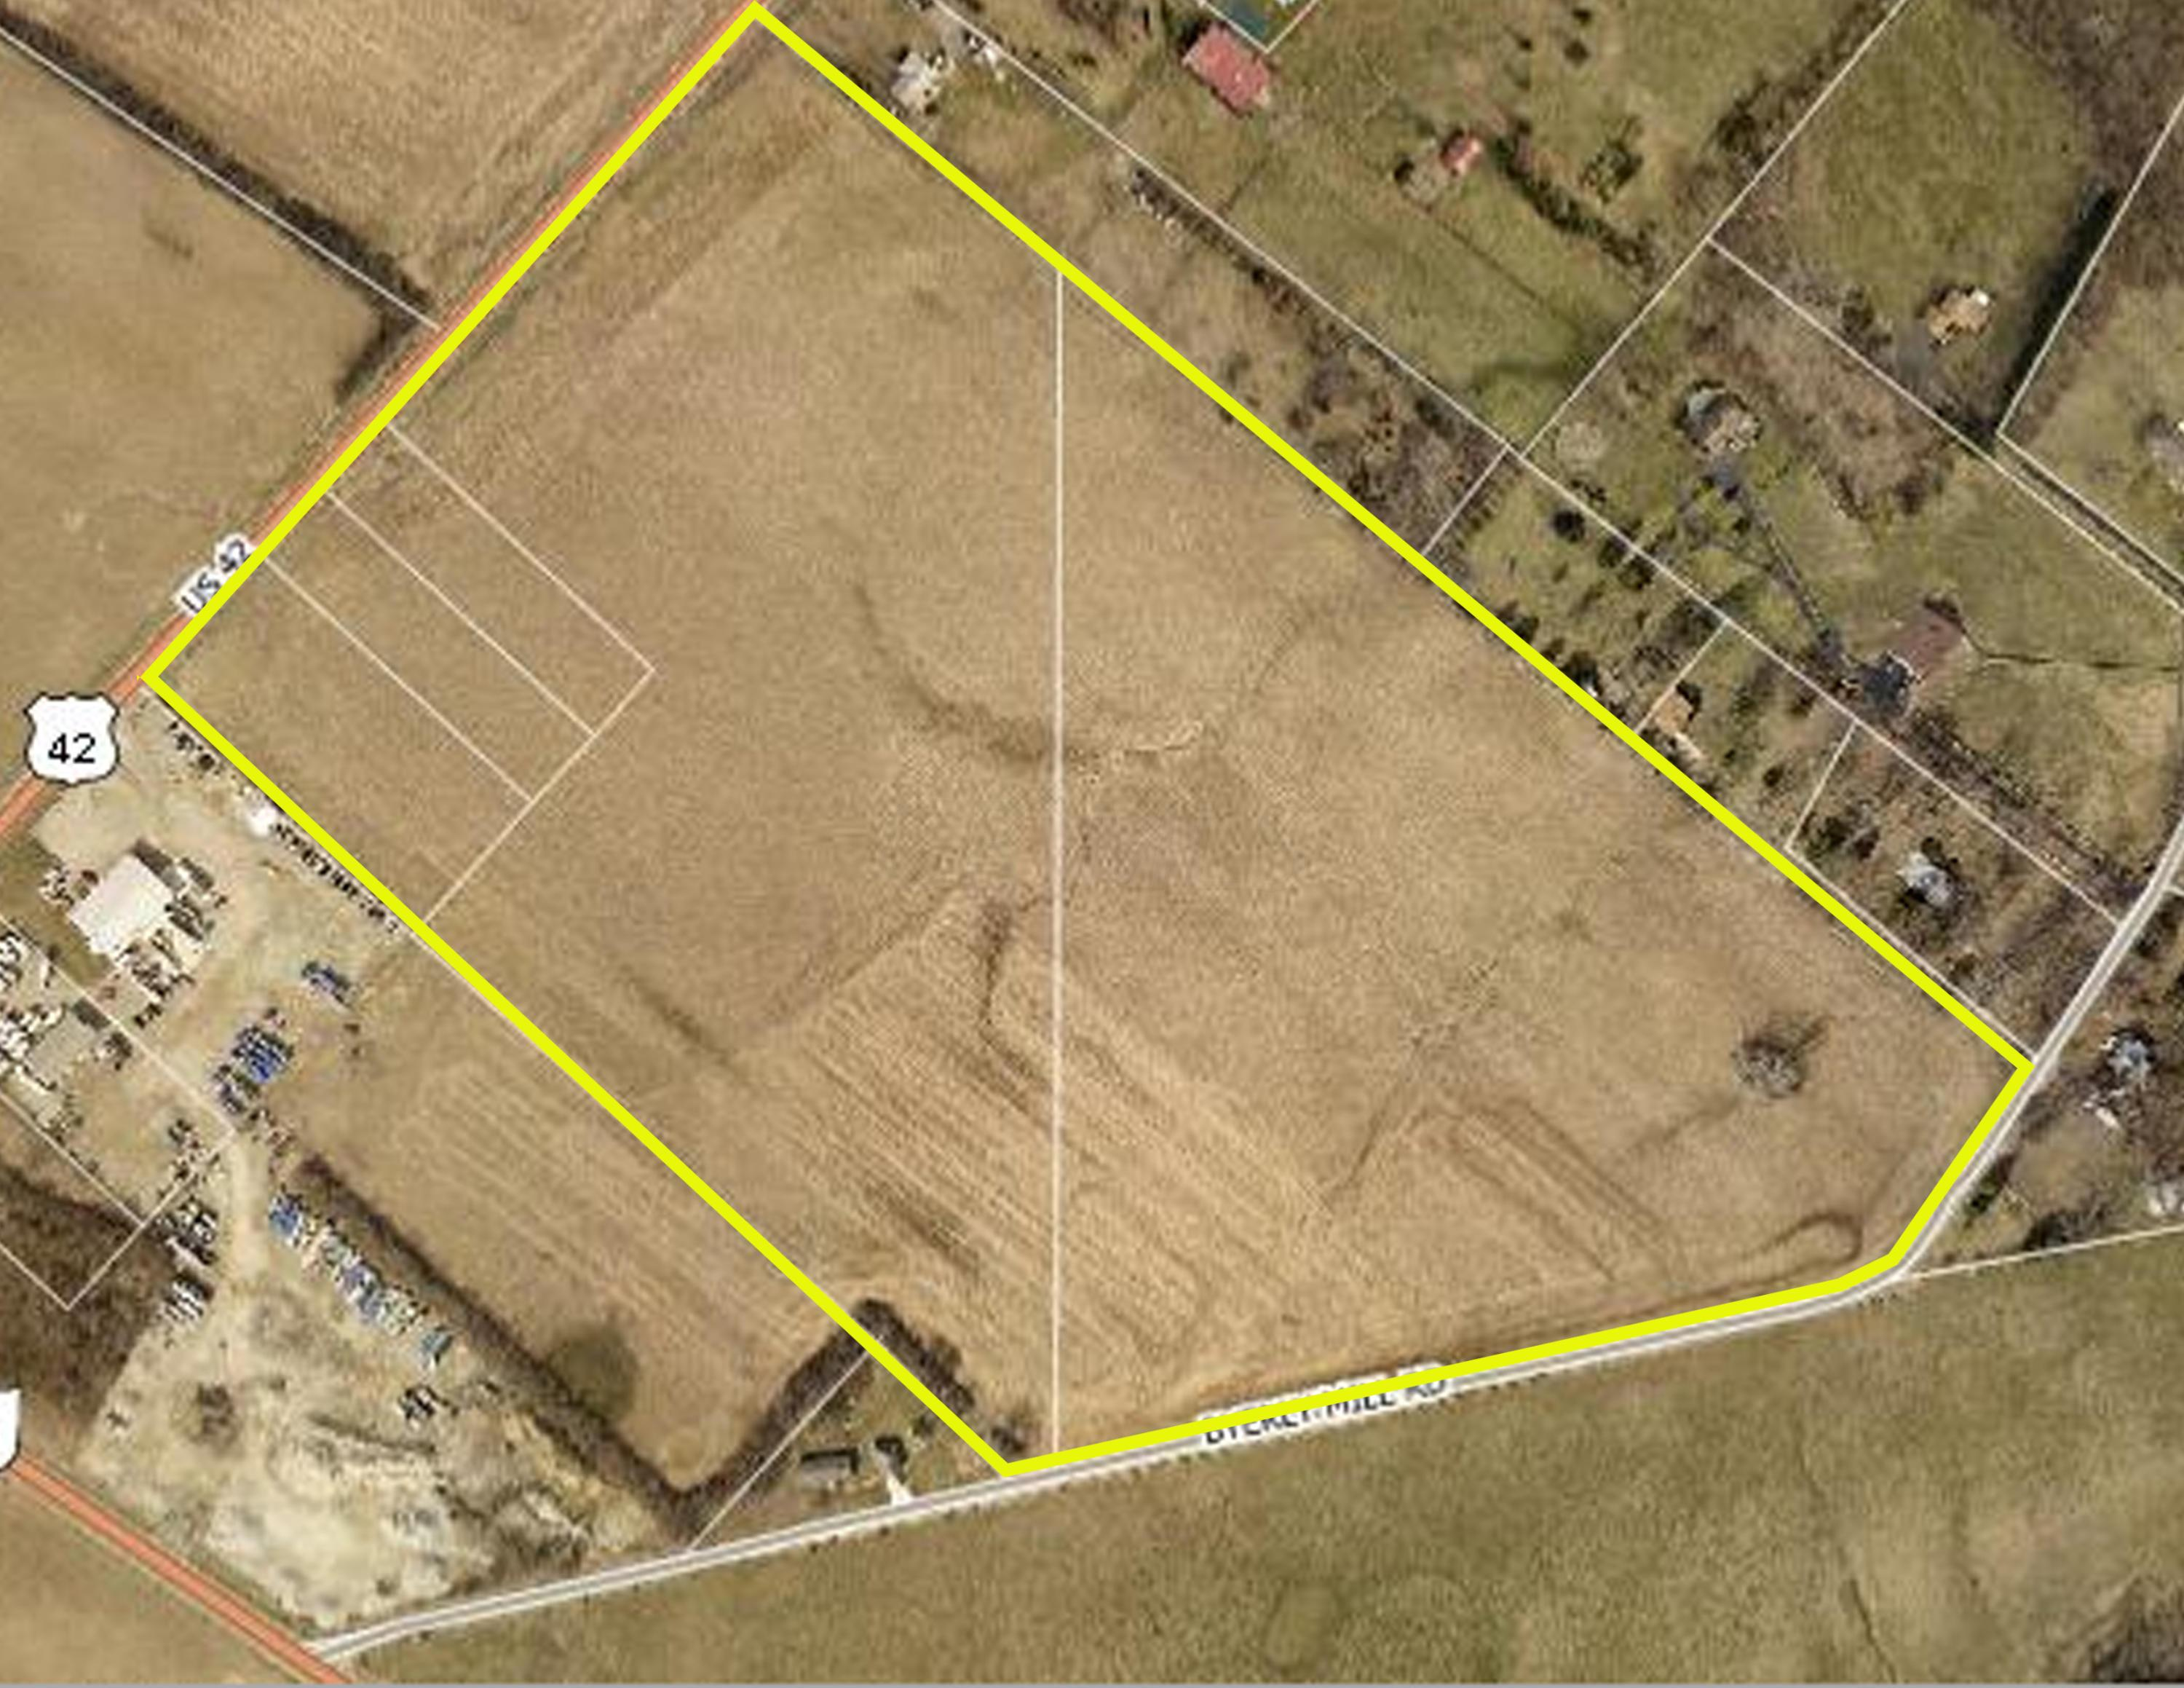 1935 US Highway 42, West Jefferson, Ohio 43162, ,Land/farm,For Sale,US Highway 42,218037482